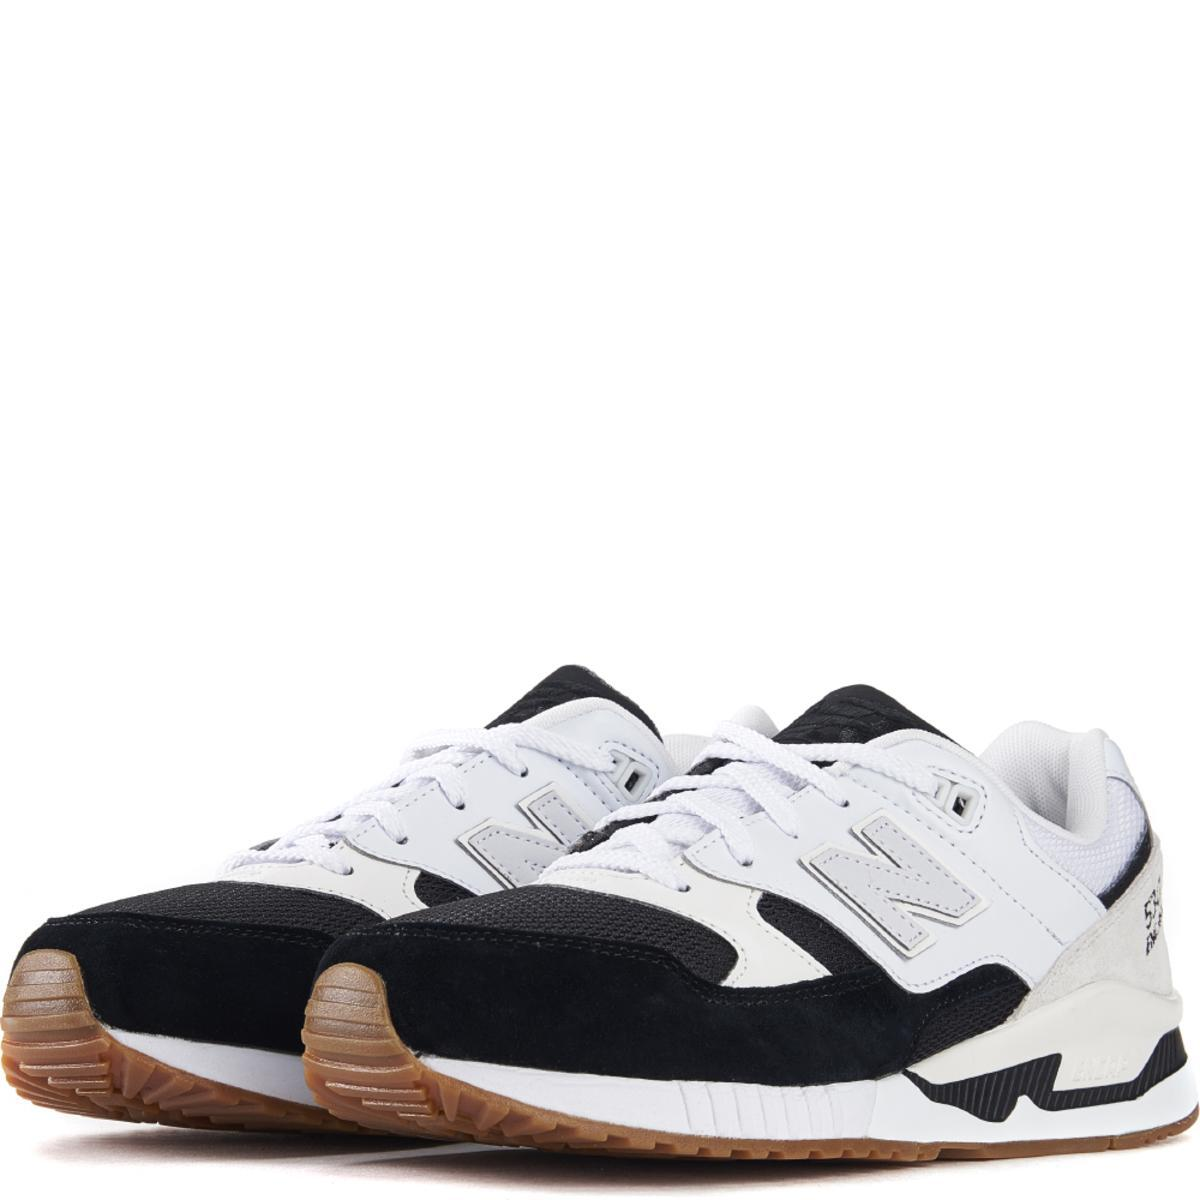 New Balance for Men: 530 Summer Waves Black with White Running Shoes